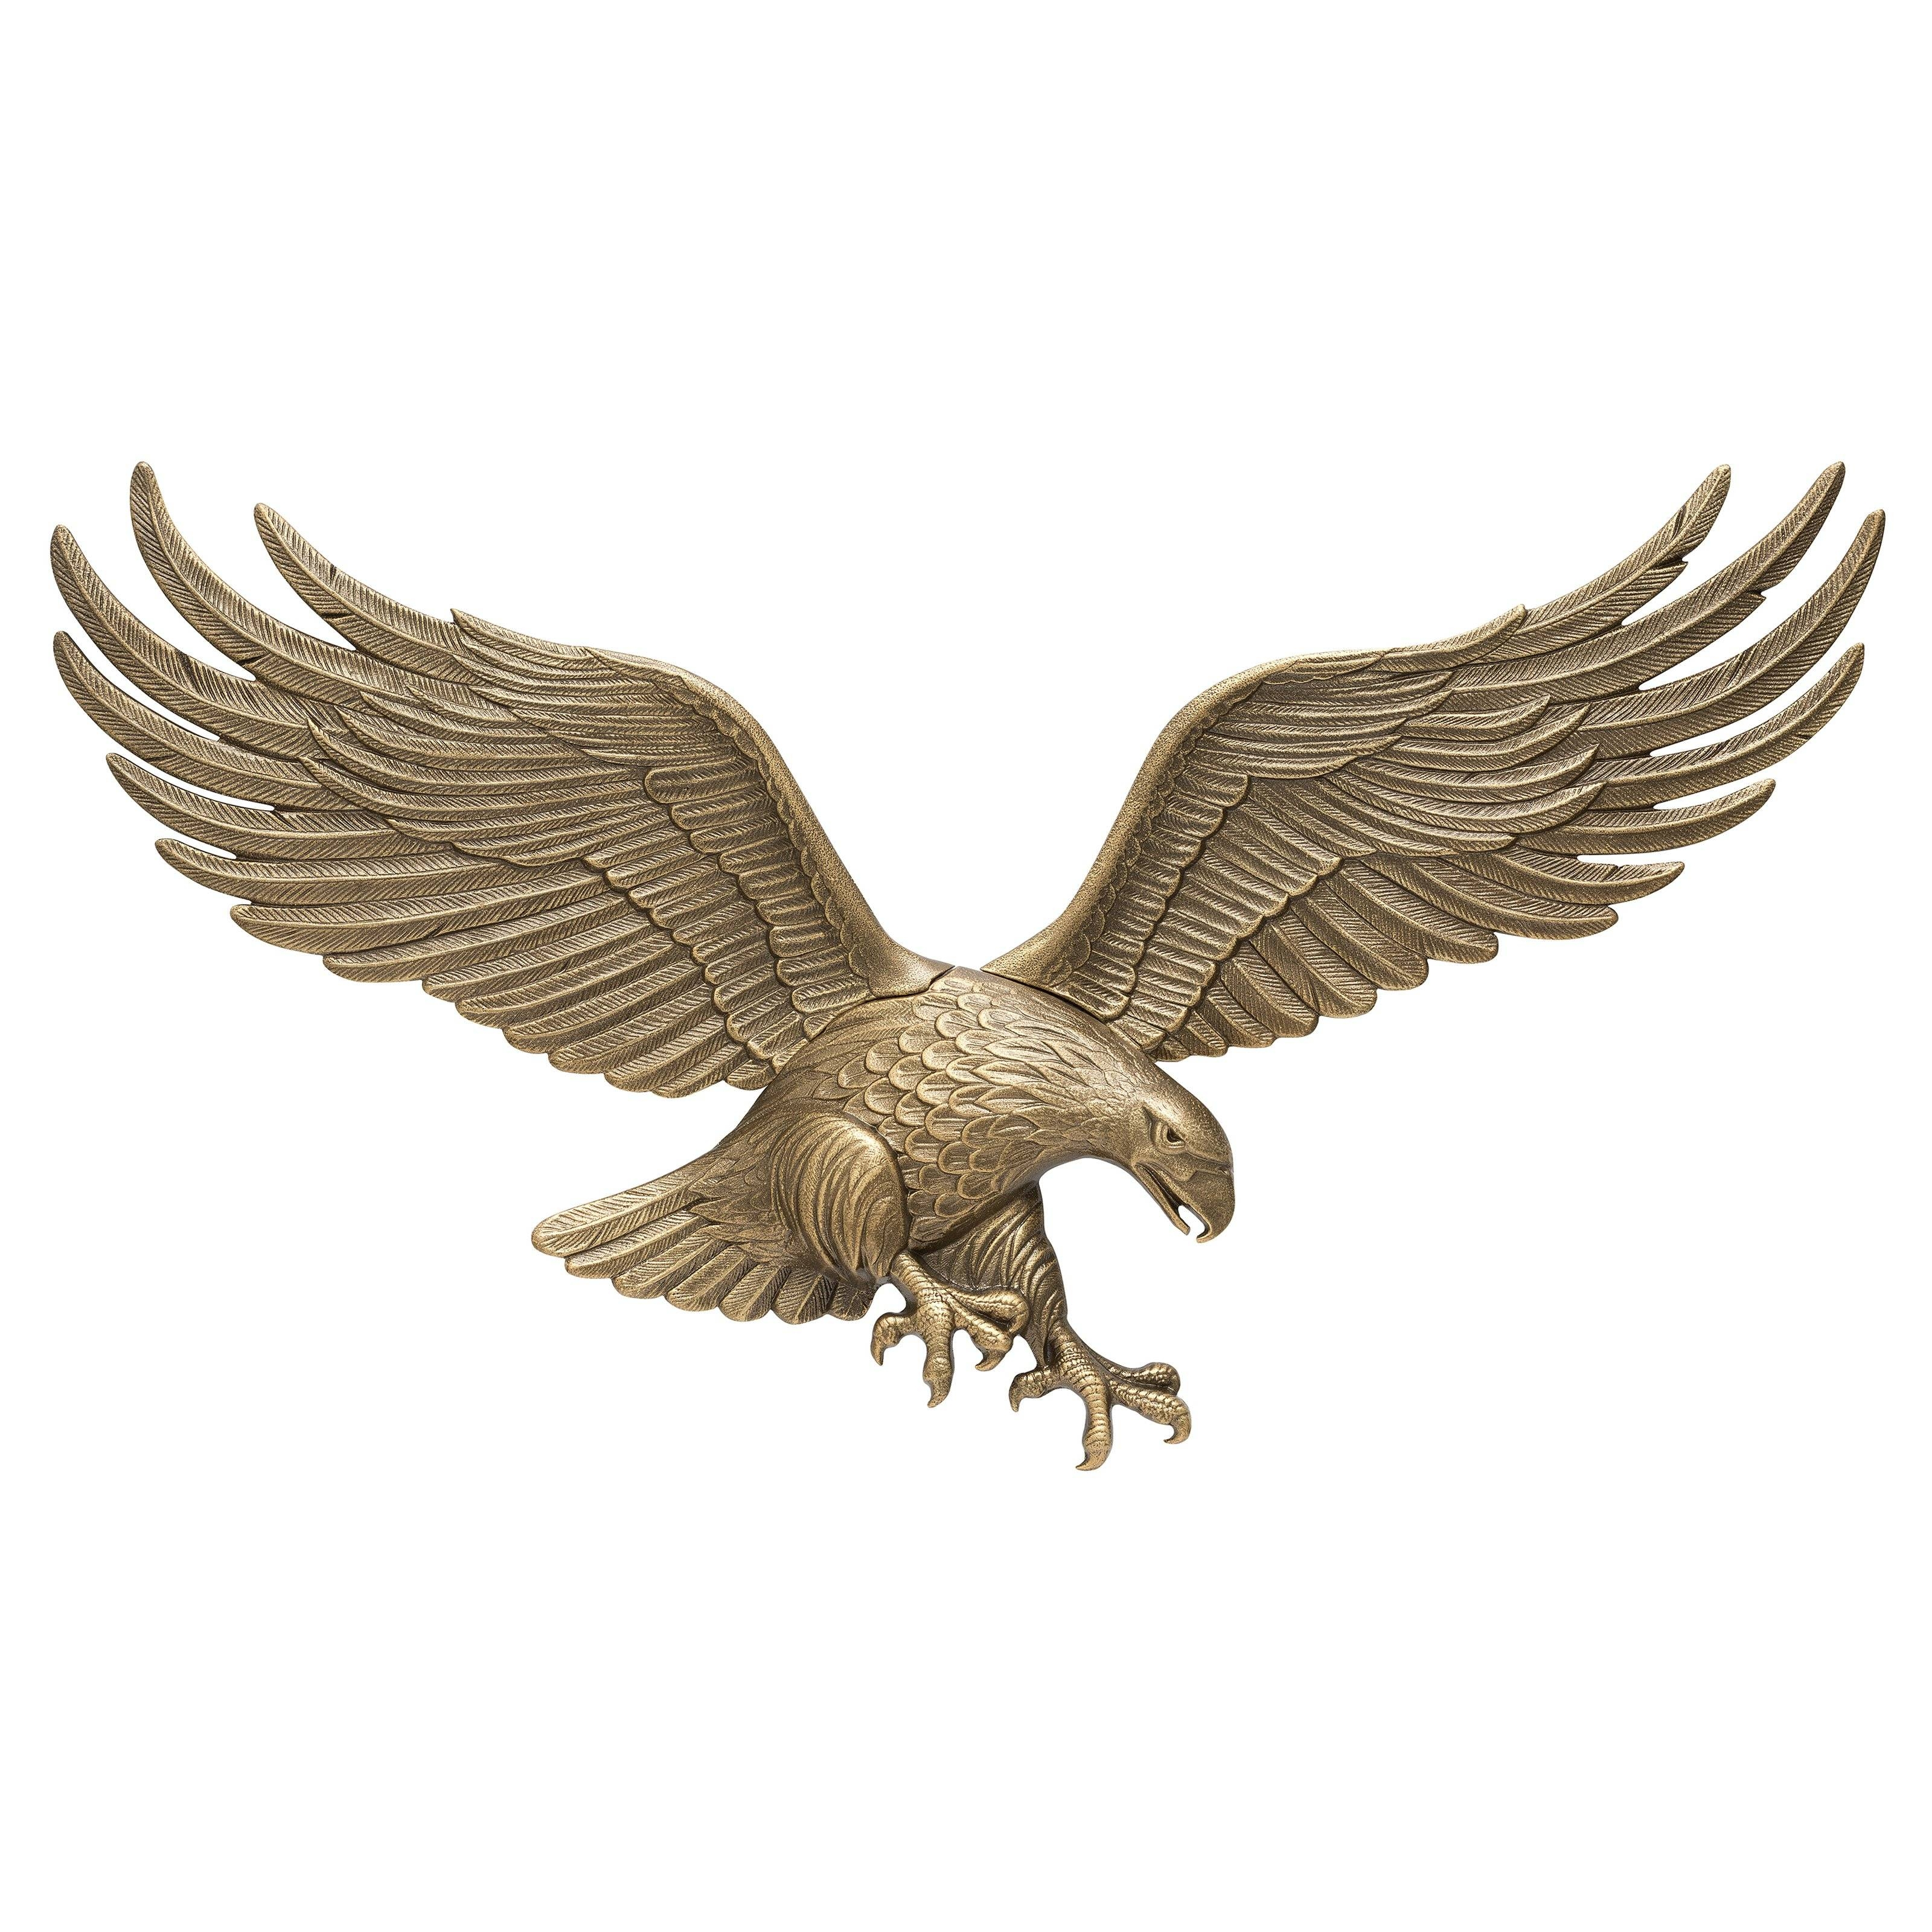 Metal Outdoor Wall Art | Hayneedle Pertaining To Recent Eagle Metal Wall Art (View 9 of 20)